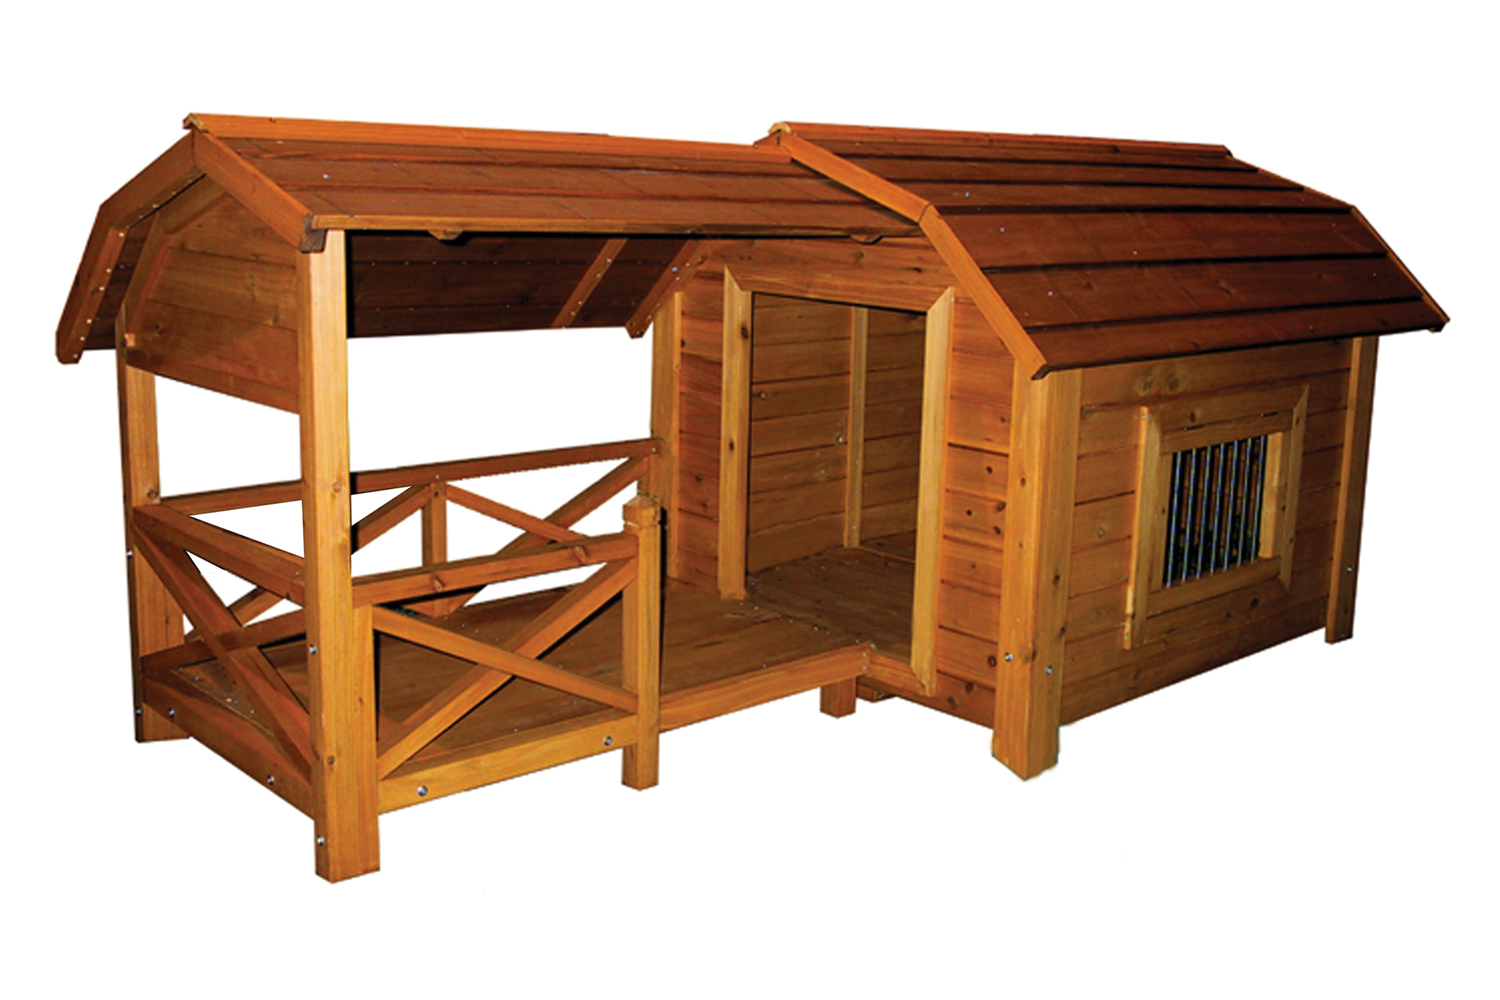 Outdoor Comfort Barn Pet Dog House With Porch Roof And Windows Large